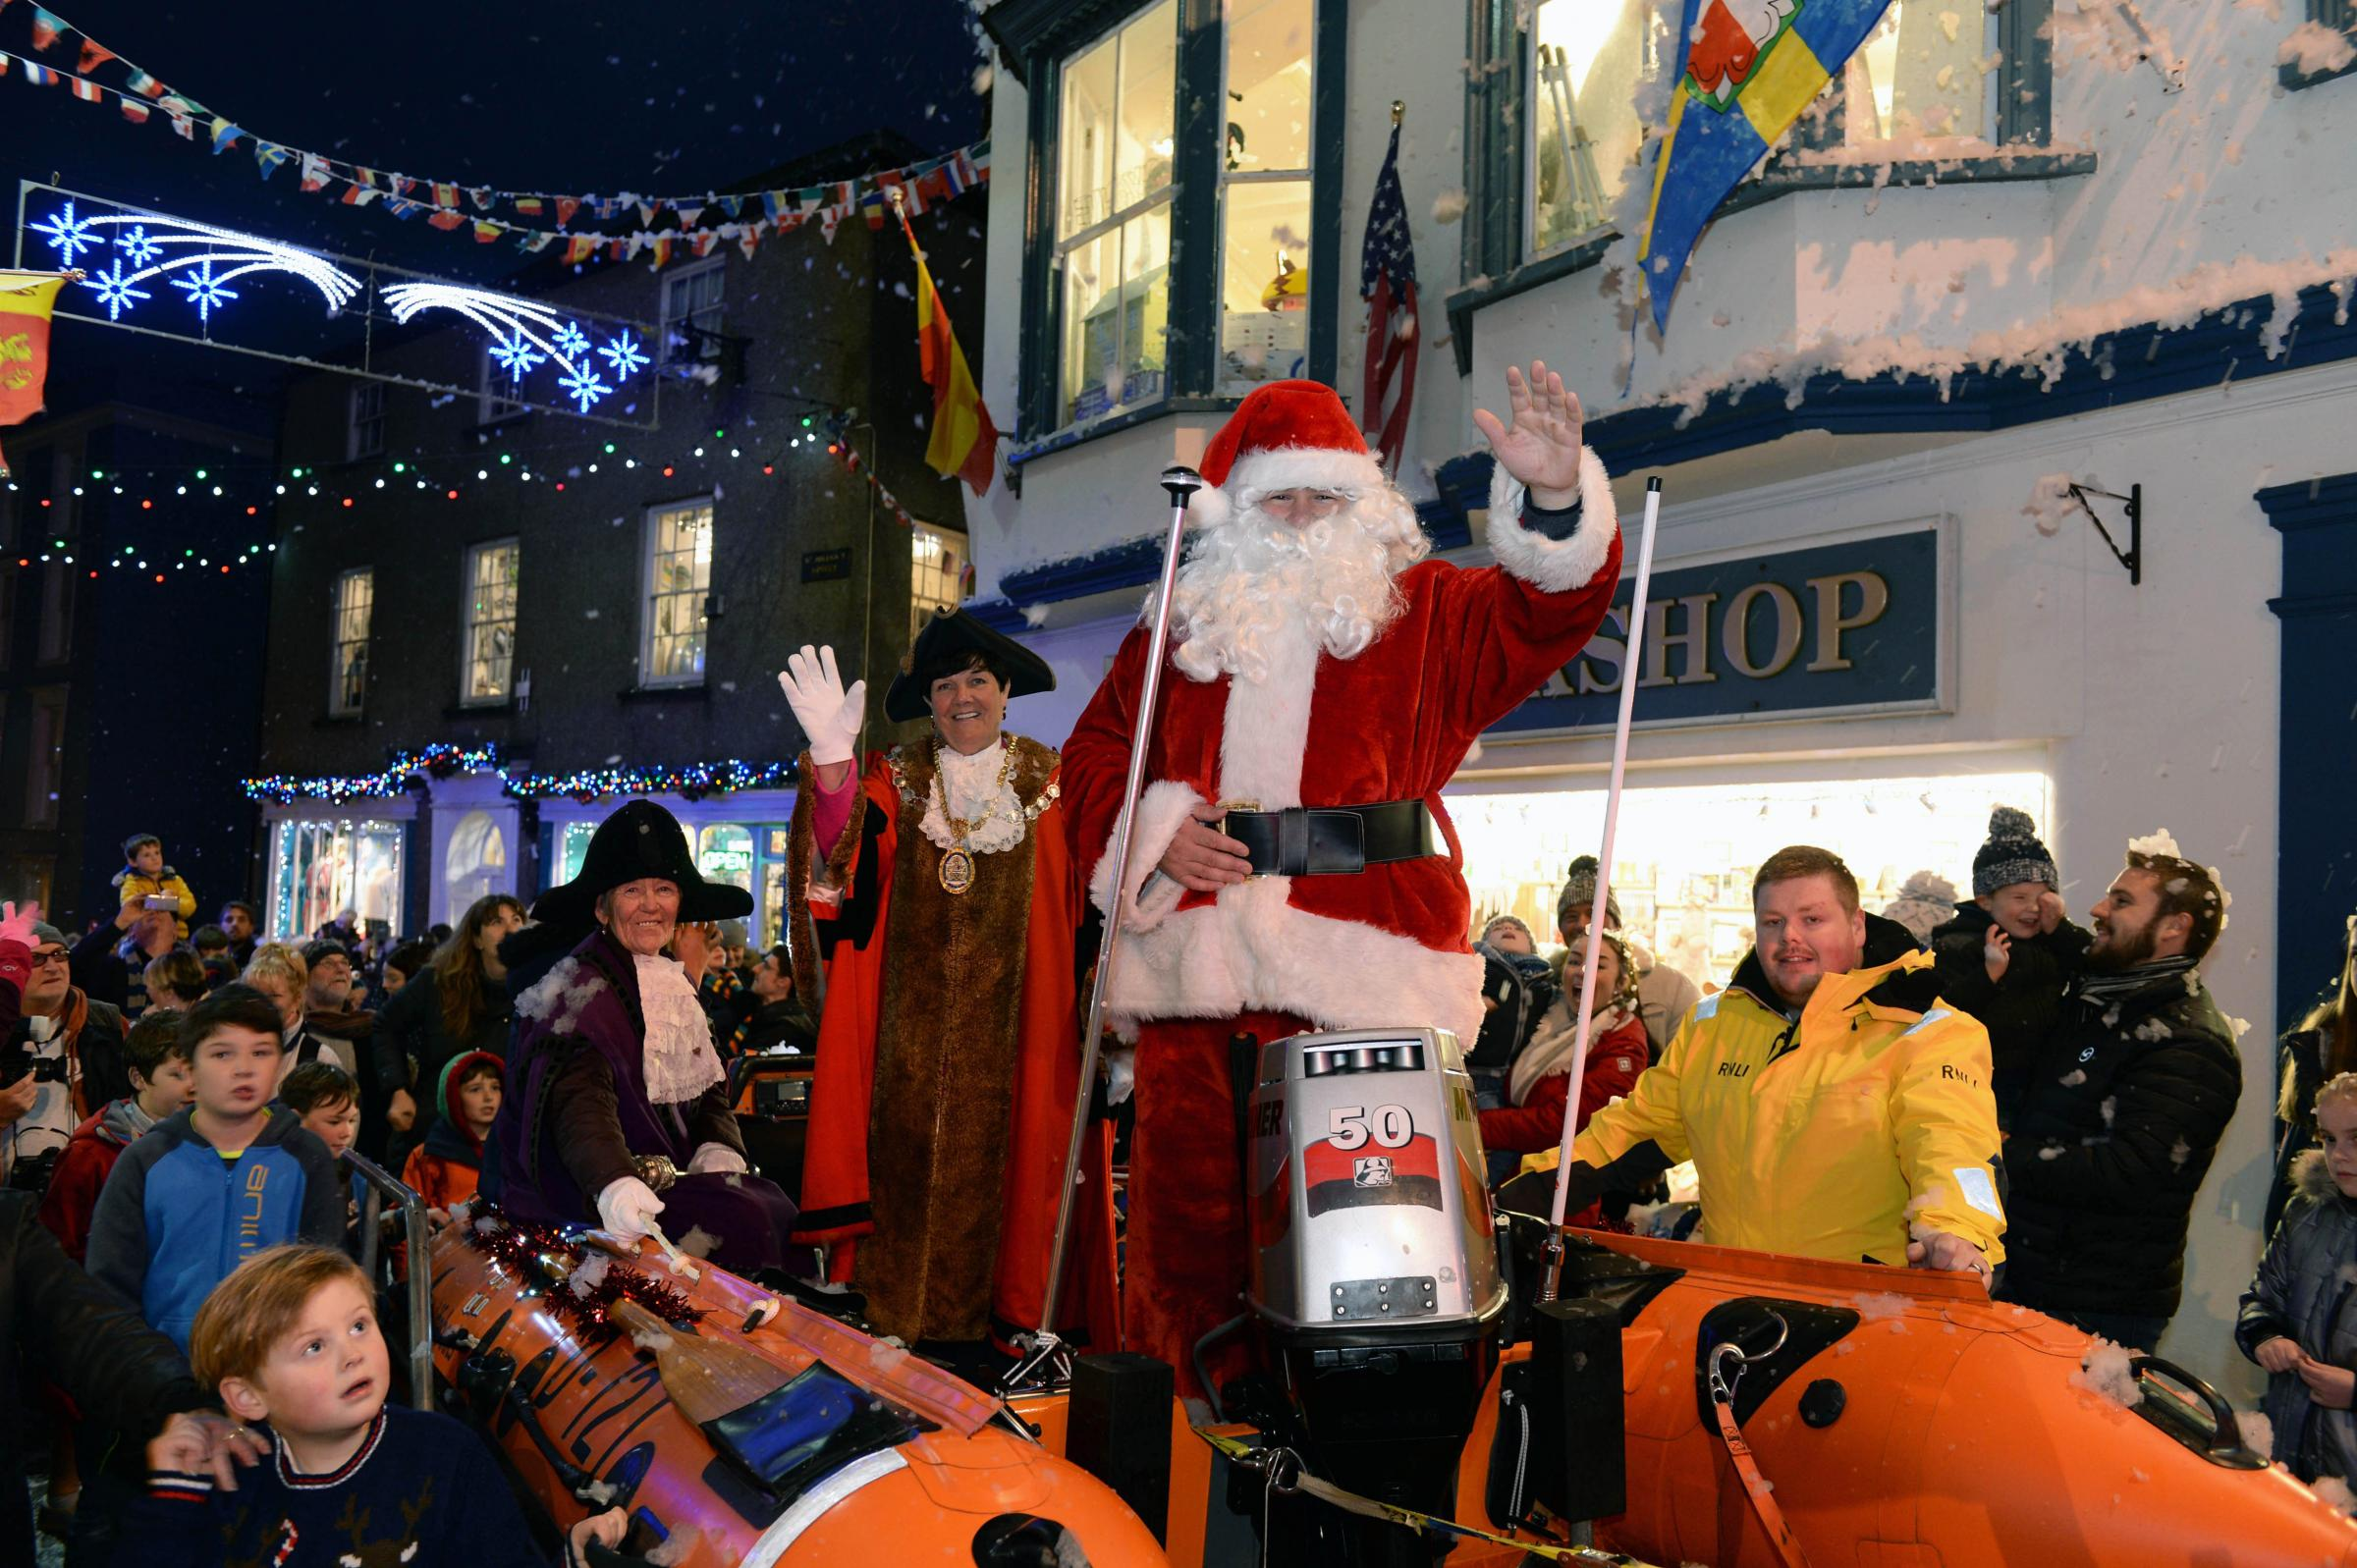 Santa kicks of festive season in Tenby this Saturday